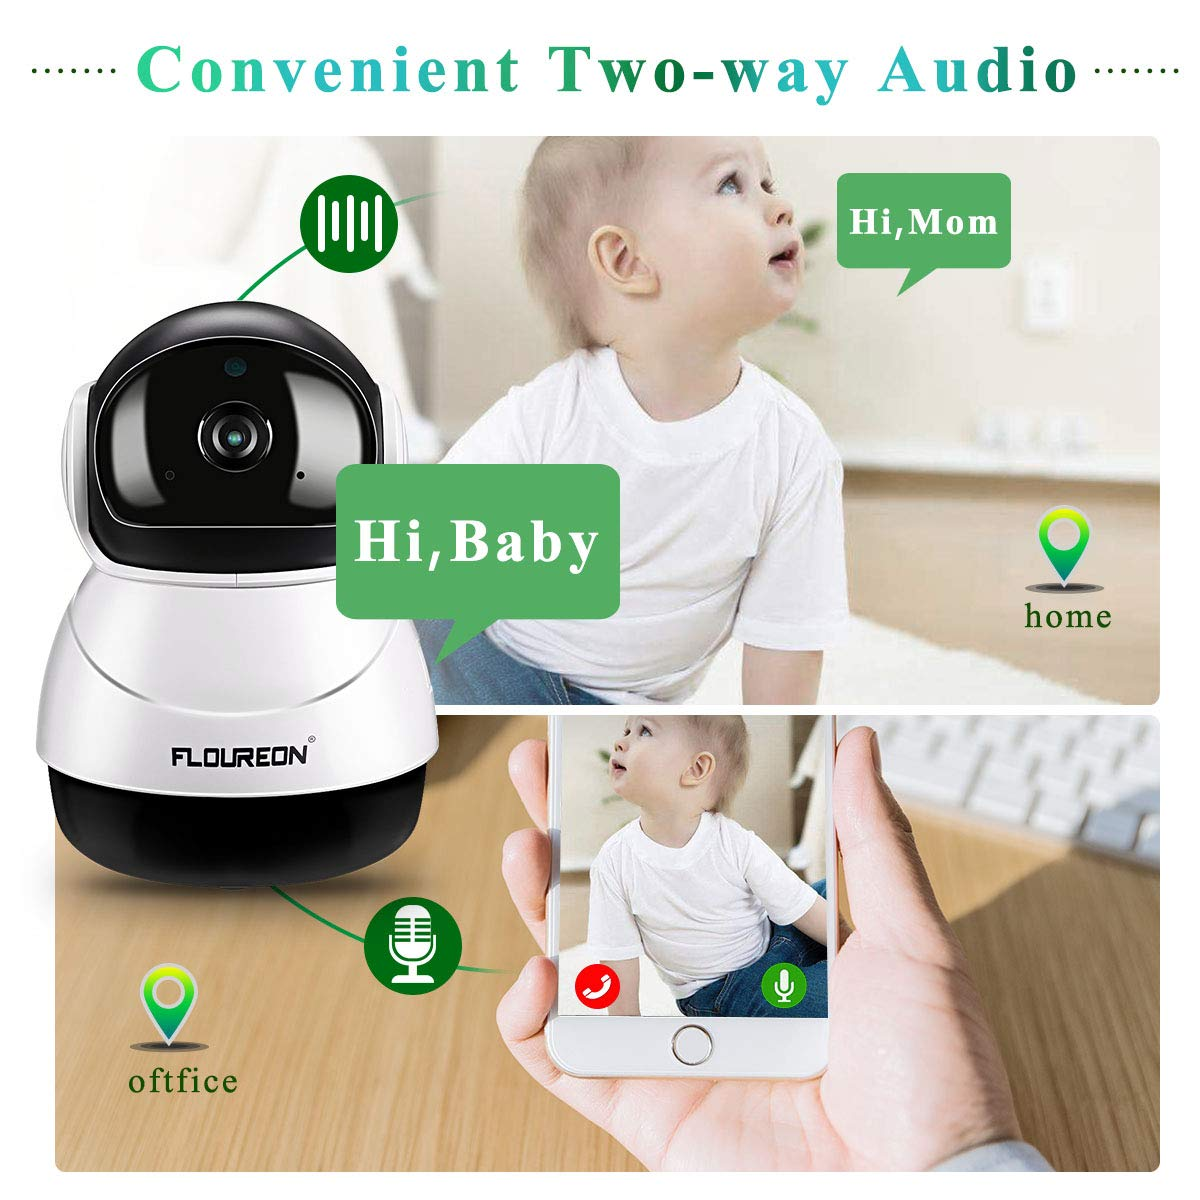 FLOUREON WiFi IP Camera 1080P HD H.264 WiFi 2.0 Megapixel Wireless CCTV Security IP Camera Two-Way Audio Surveillance System with Night Vision & Motion Detection for Baby Monitor Home Security